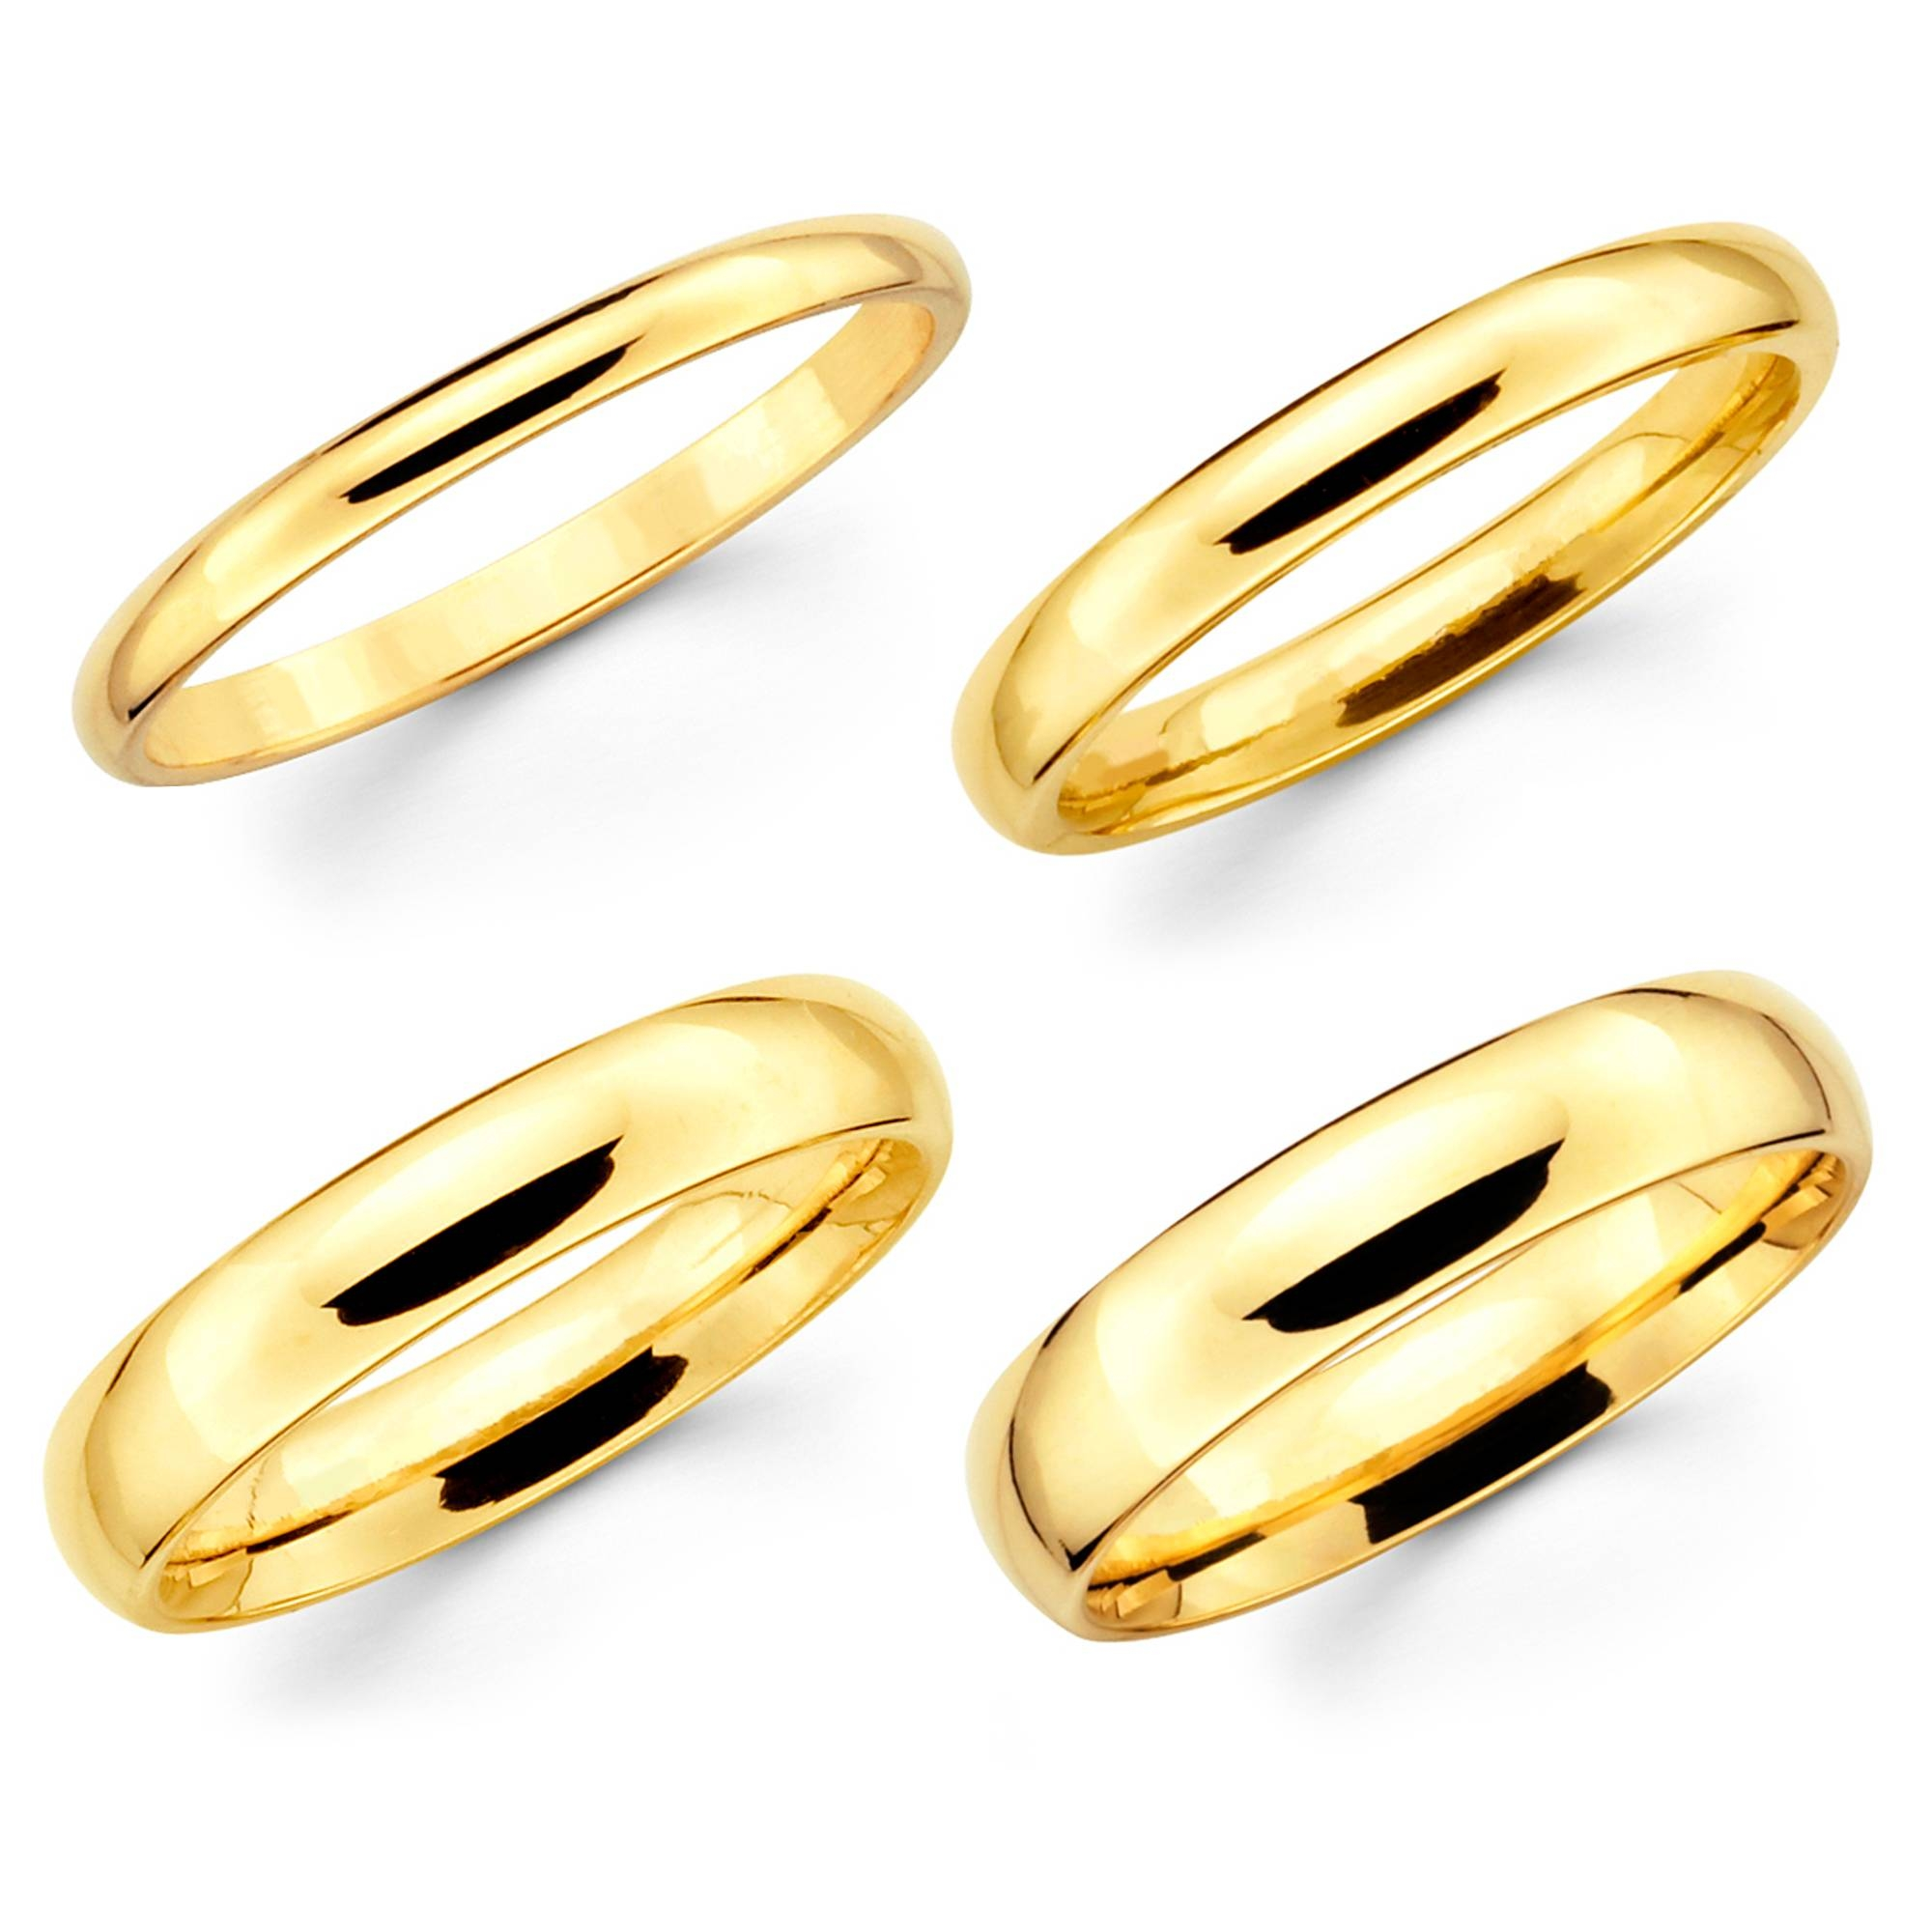 10 Carat Gold Wedding Bands Tags : Pure Gold Wedding Rings Wedding For Gold Wedding Bands For Men (View 2 of 15)